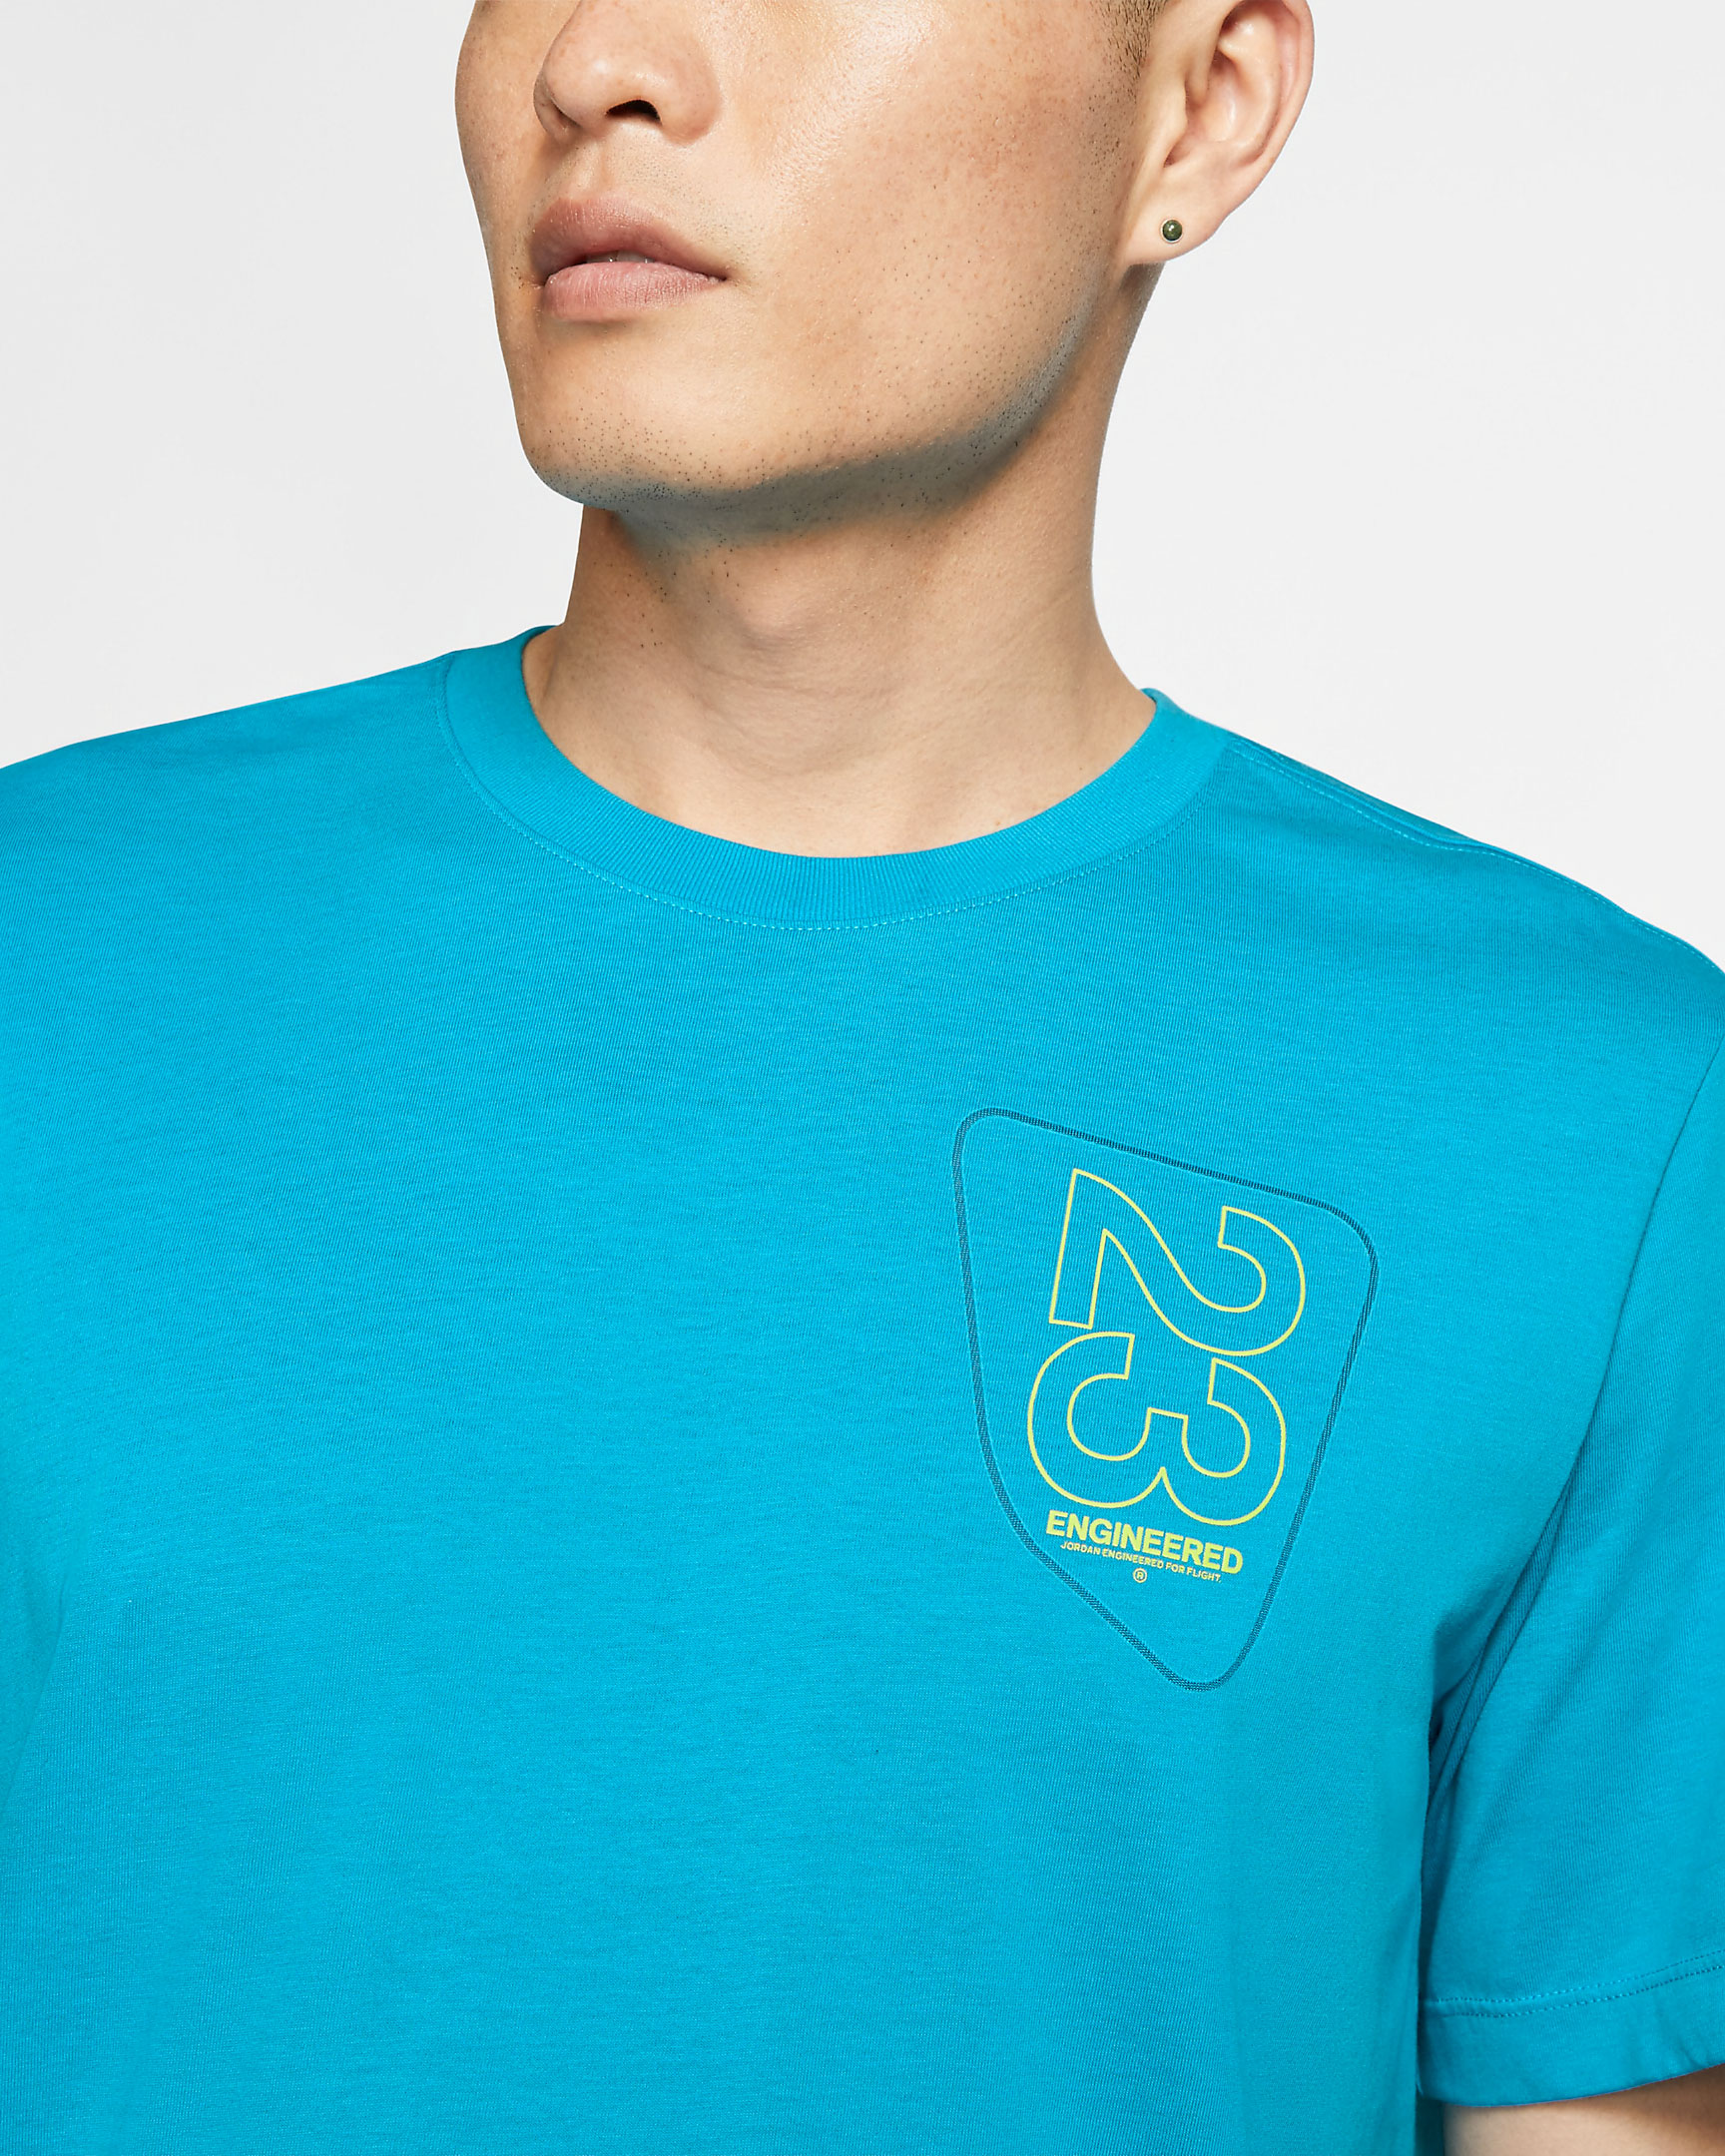 jordan-23-engineered-shirt-blue-green-3